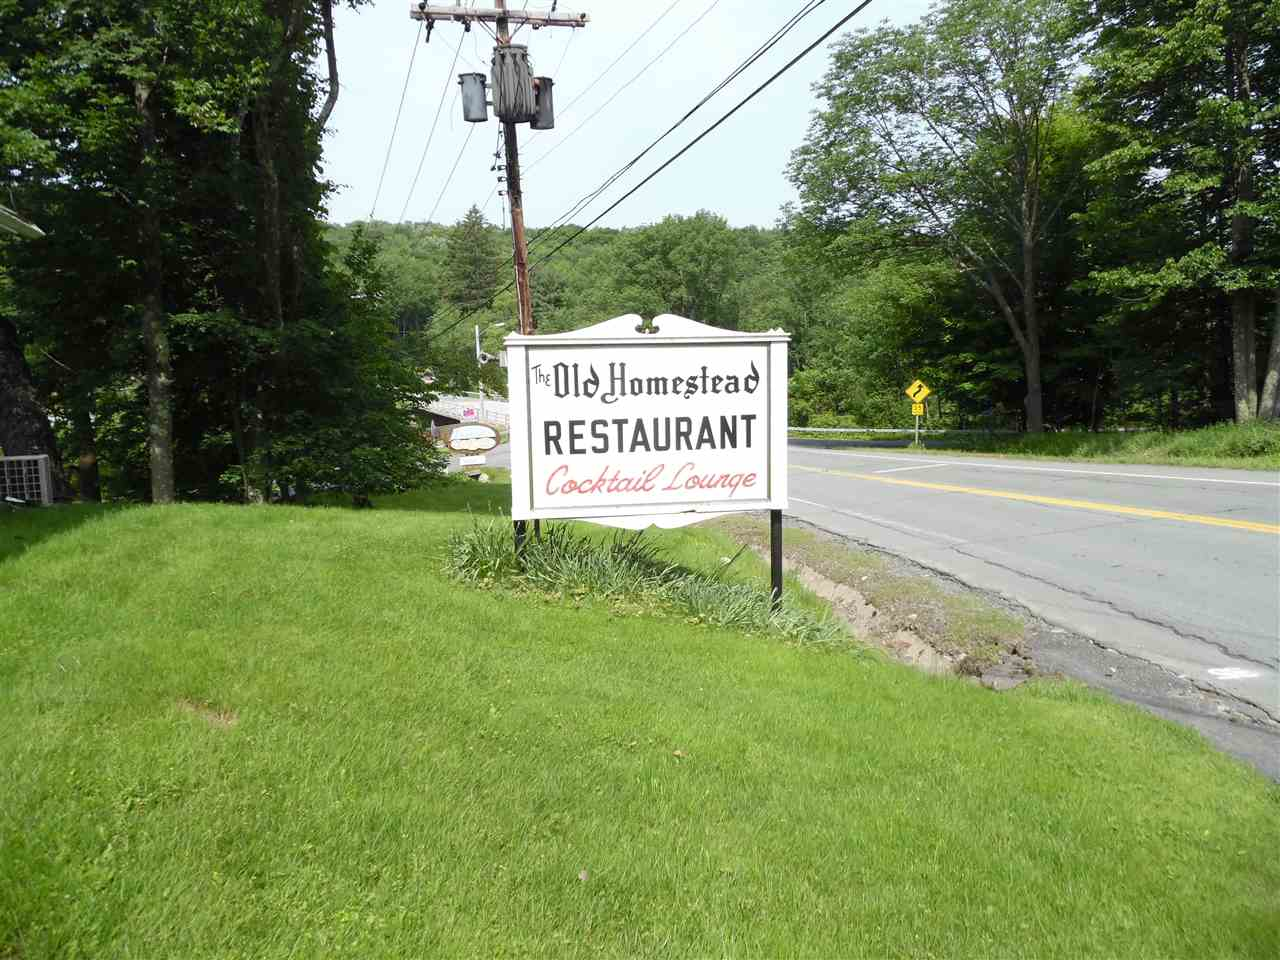 Image of Commercial for Sale near Monticello, New York, in Sullivan county: 4.17 acres